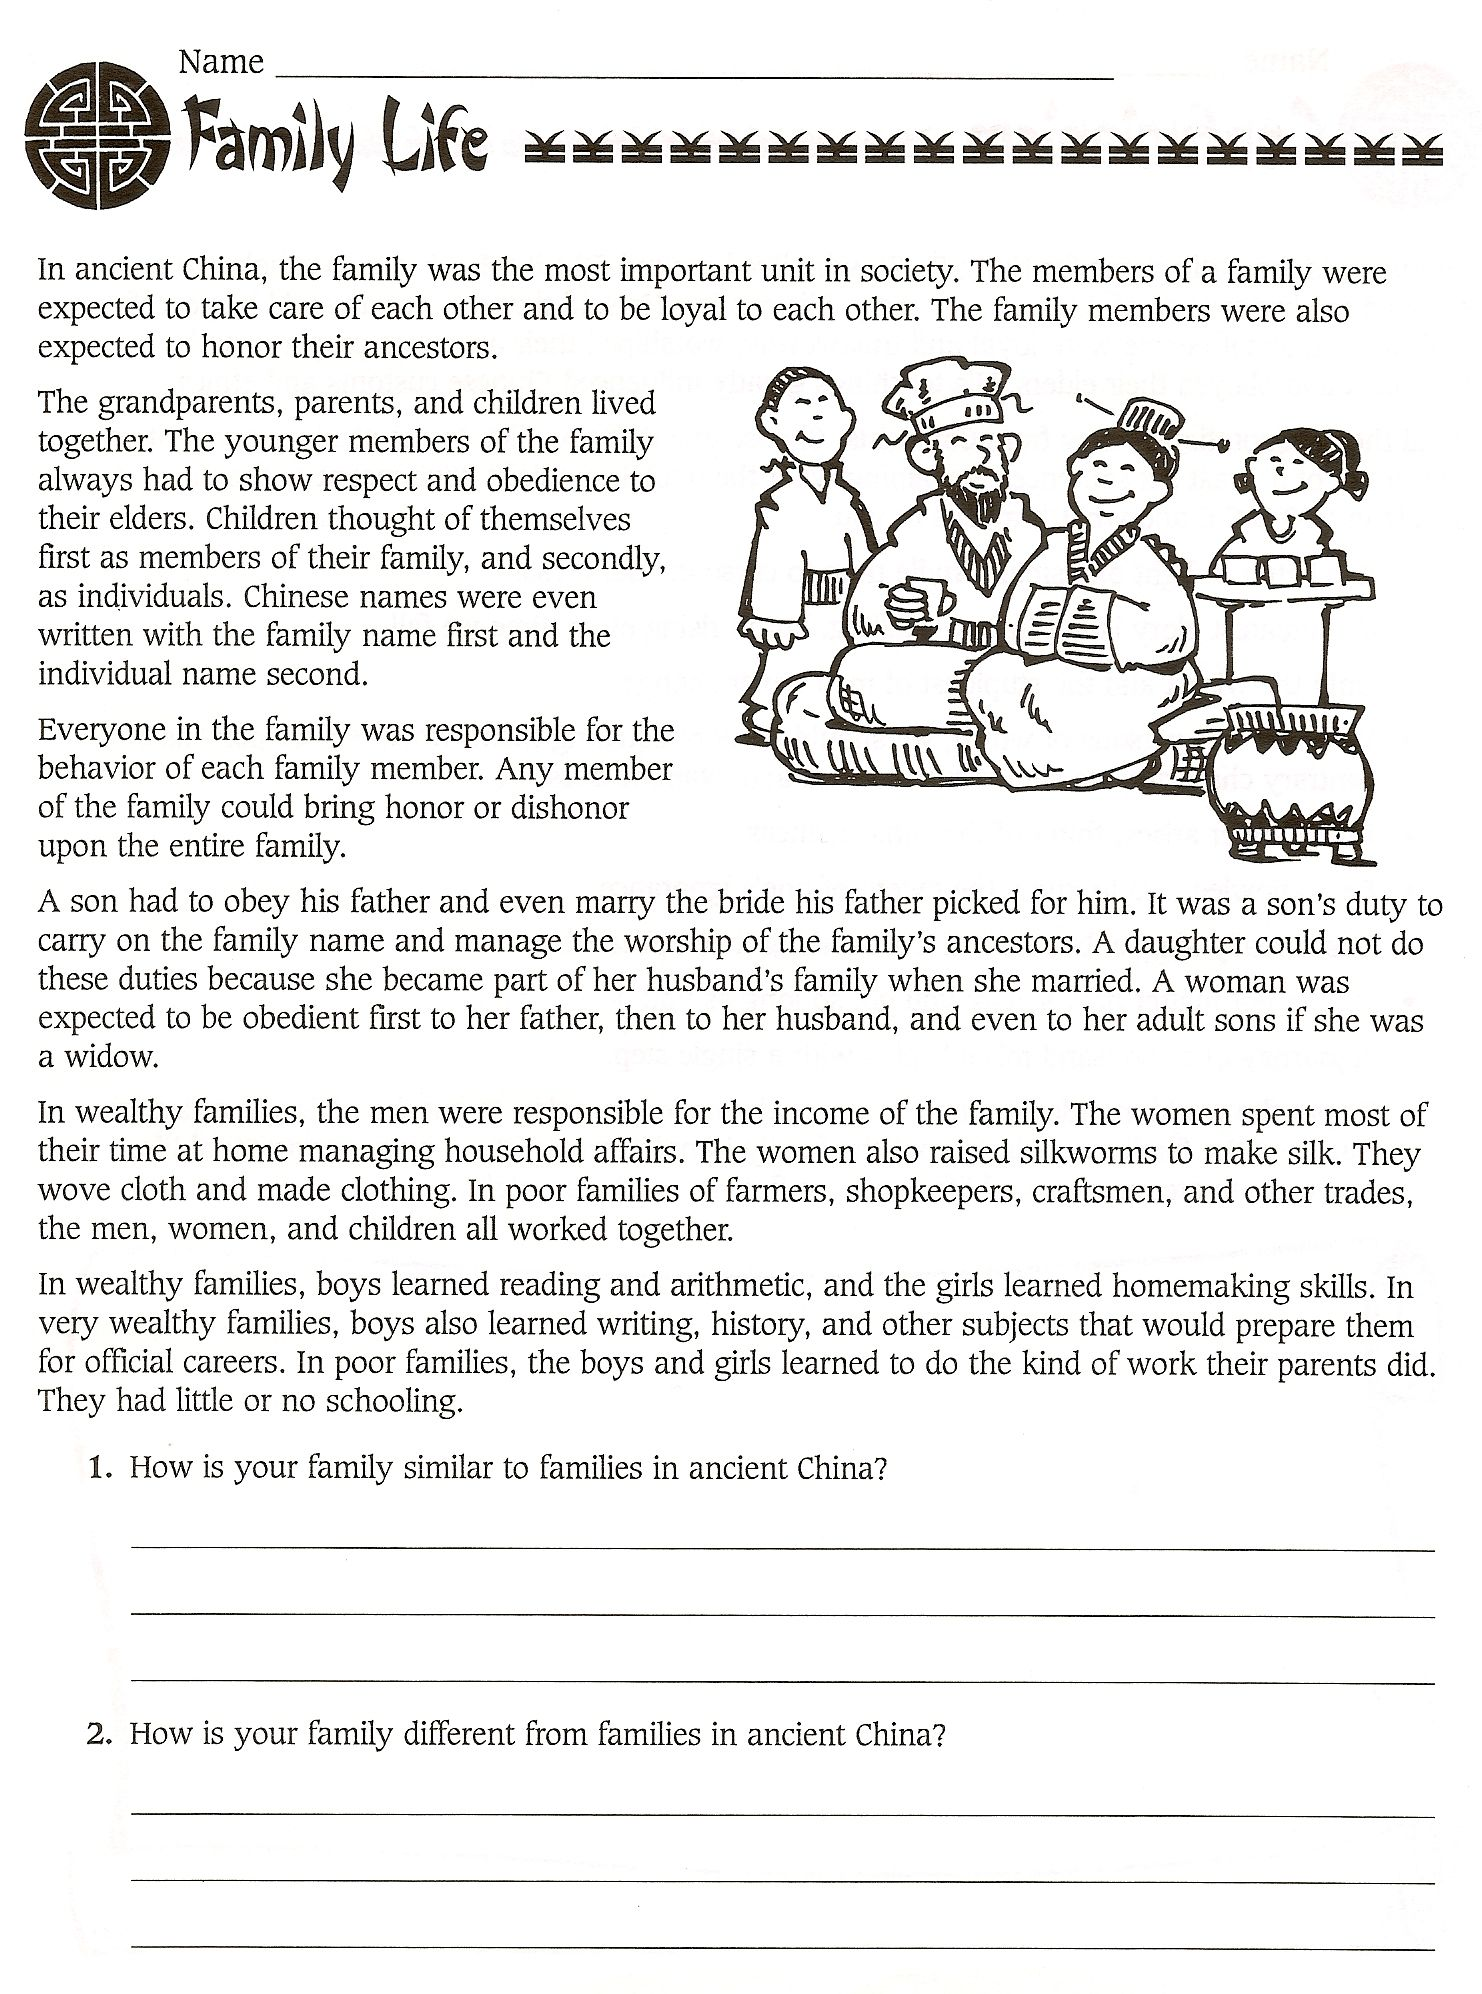 Worksheets Social Studies Reading Comprehension Worksheets 6th grade social studies ancient china worksheets free free